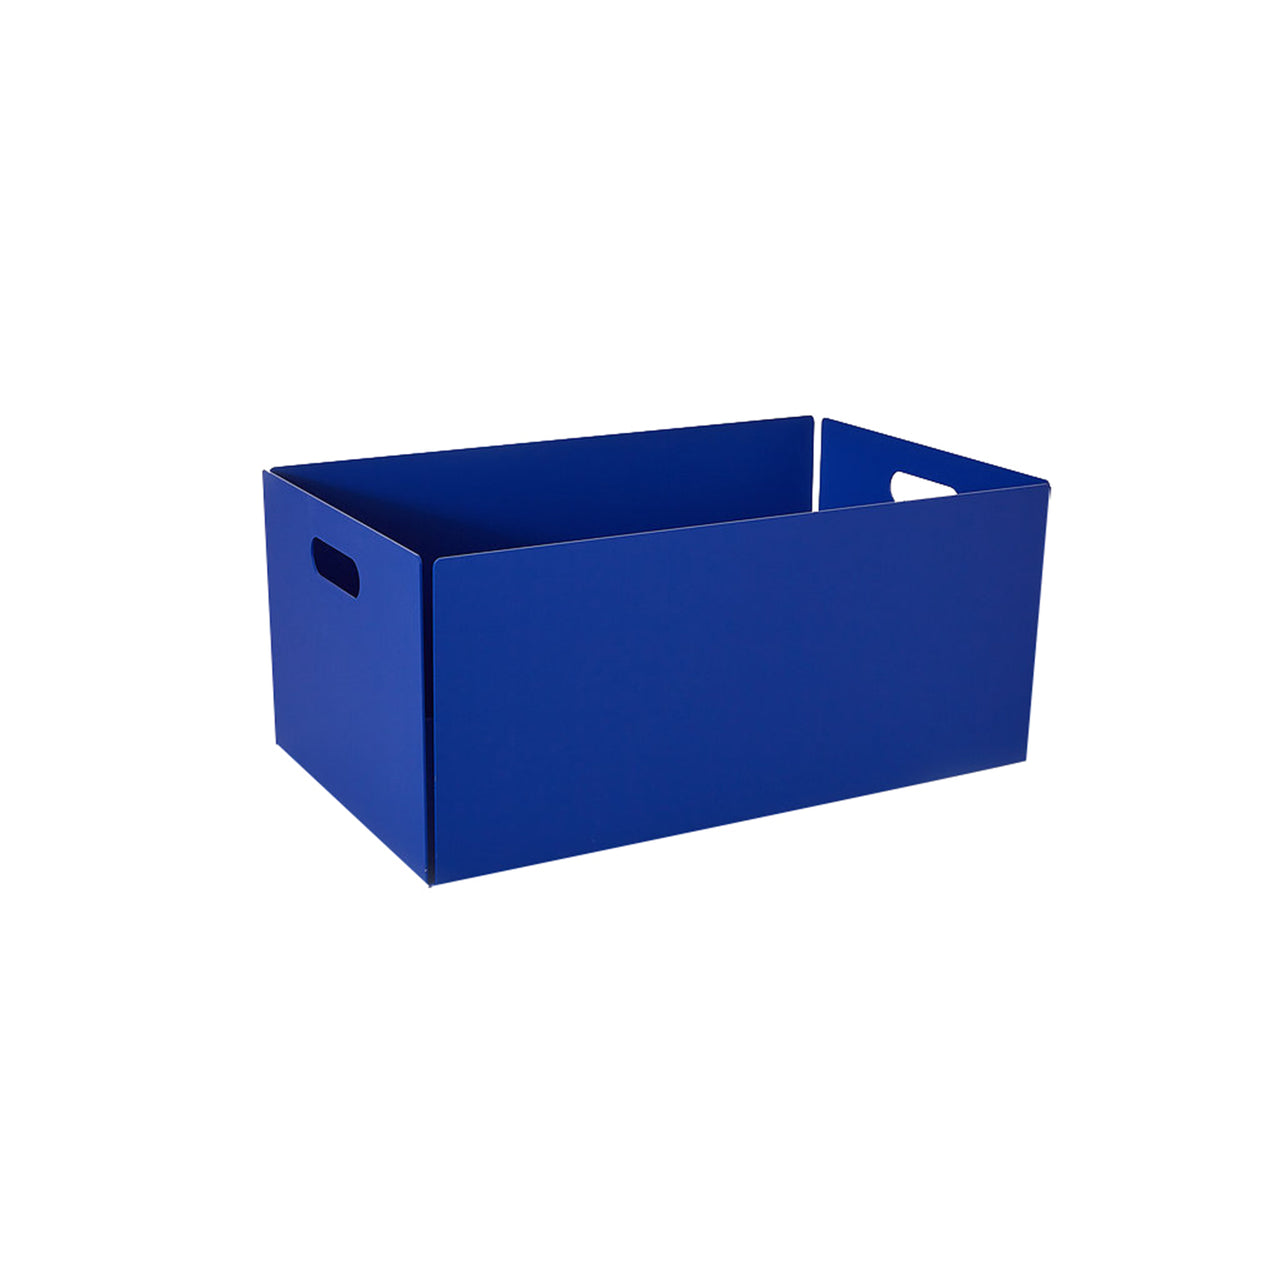 Metal Dowel Basket: Large + Ultramarine Blue